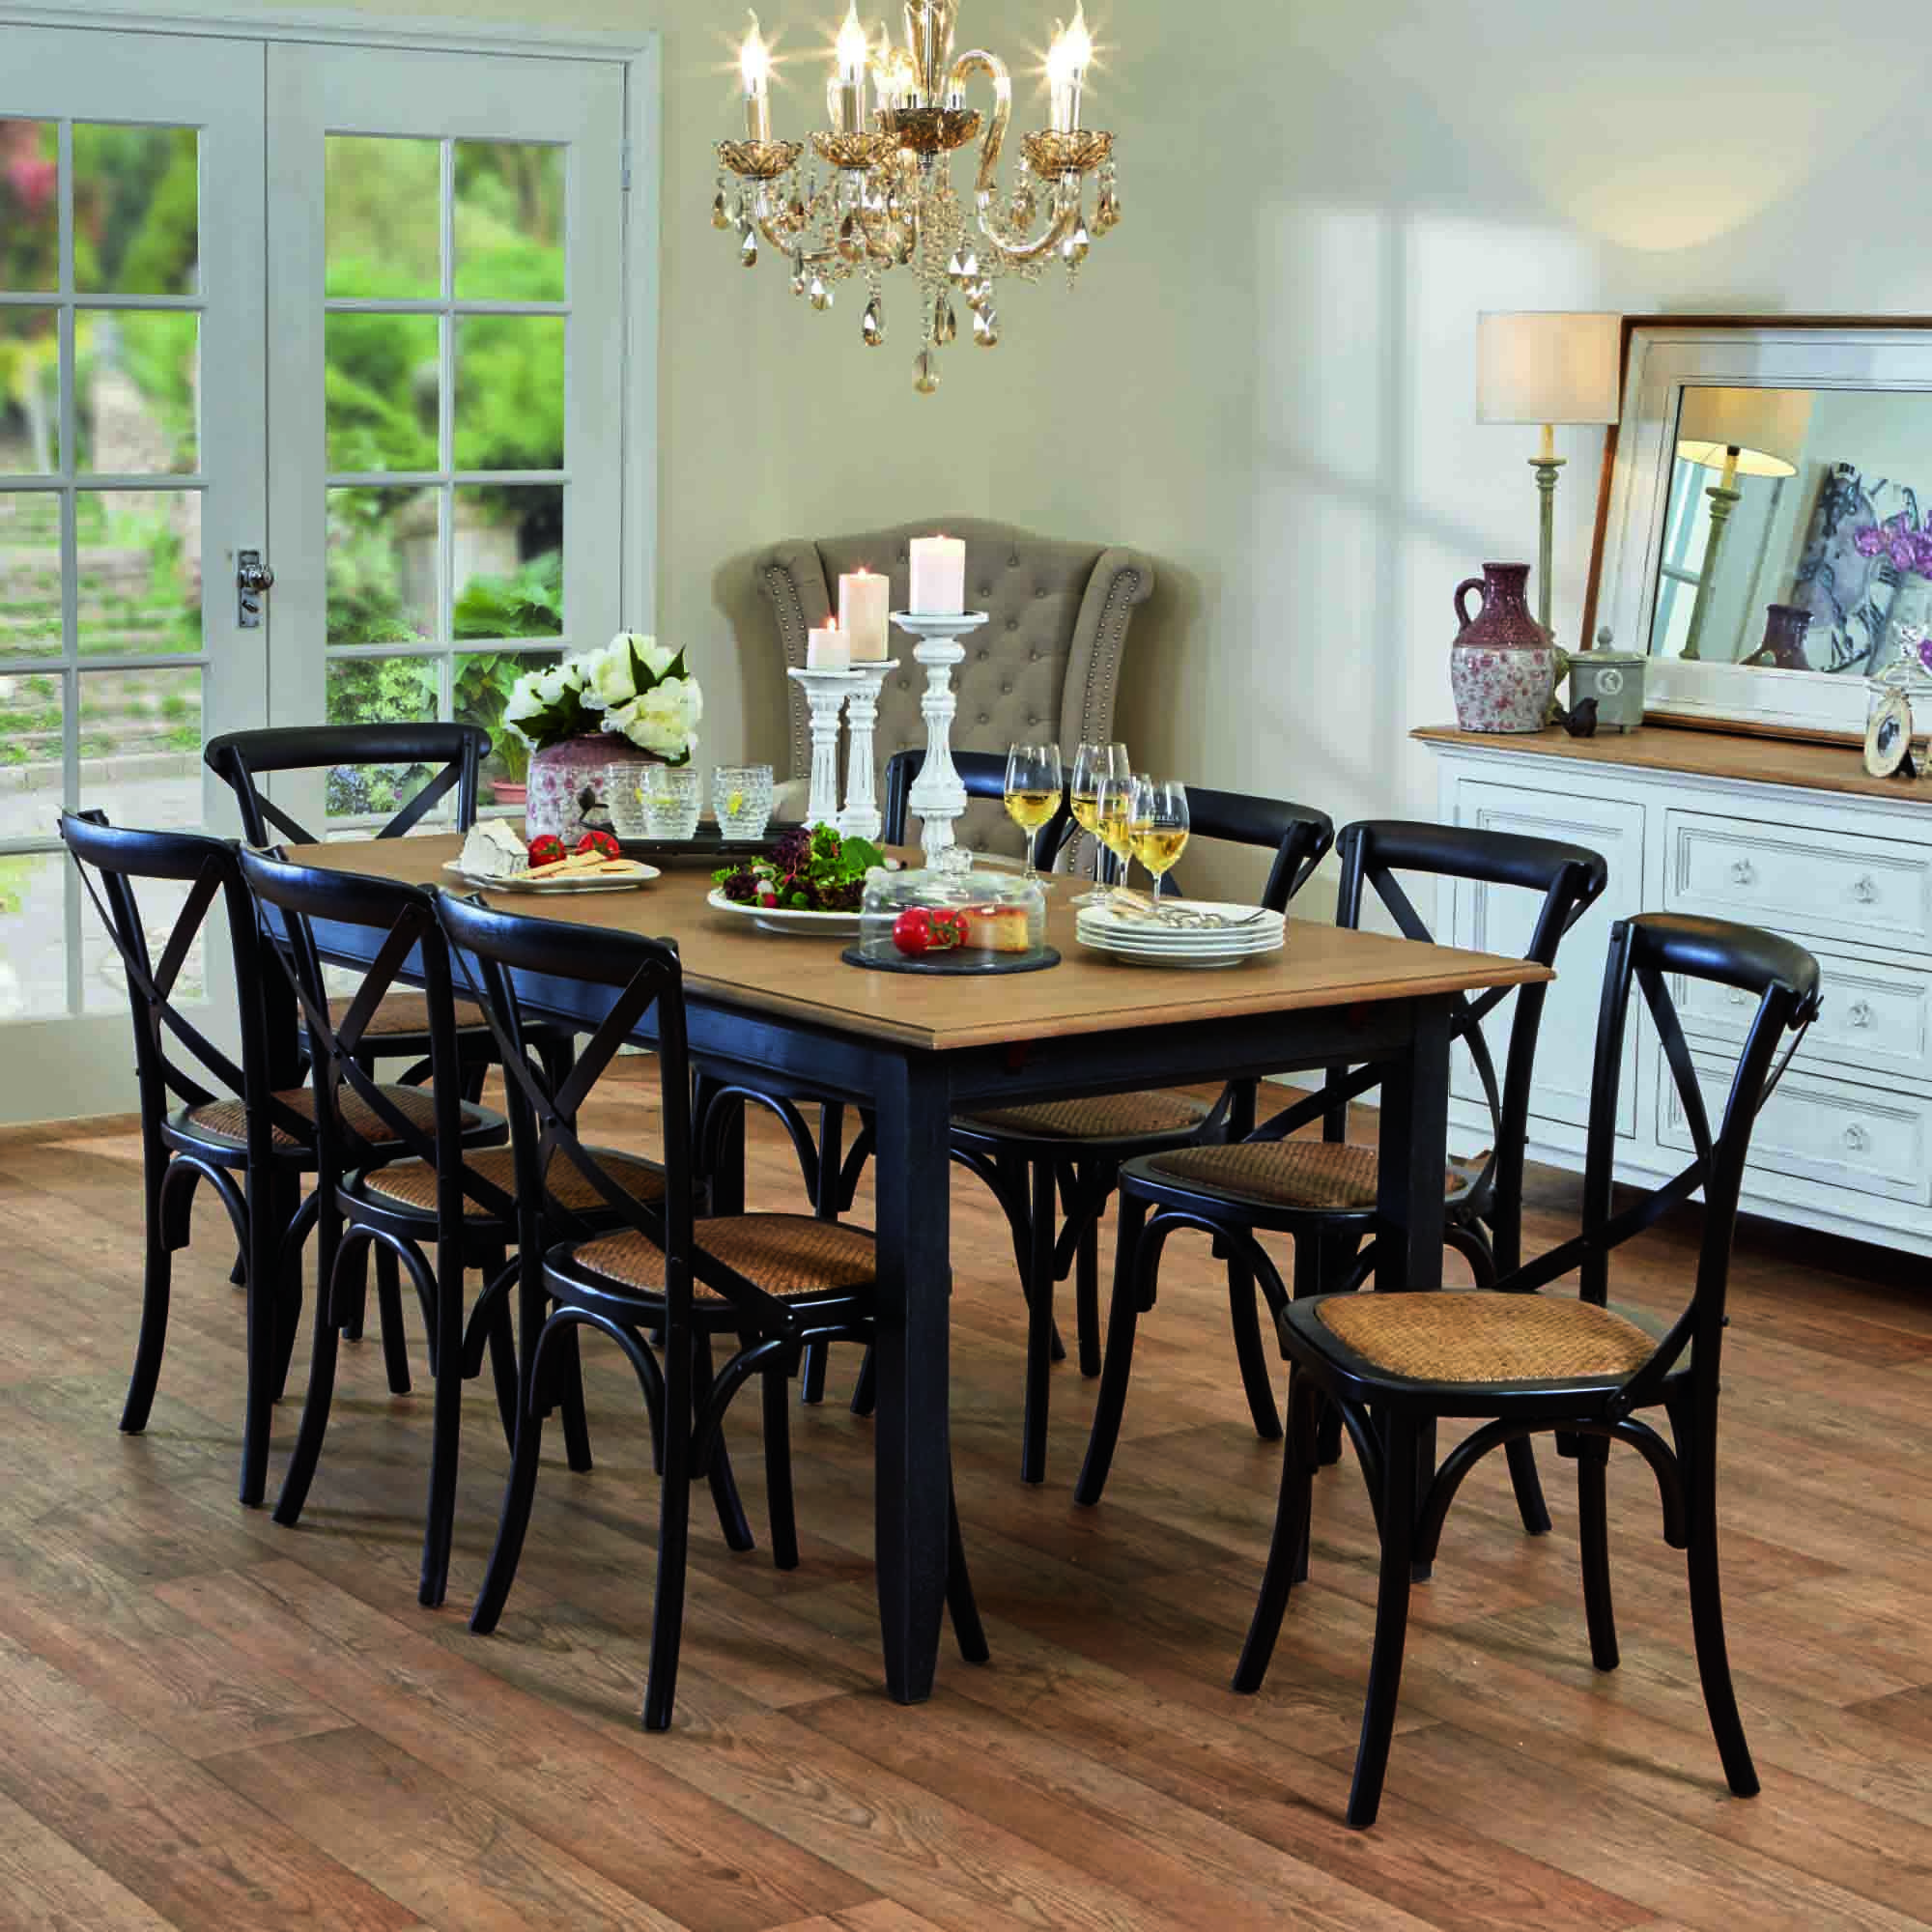 Esquisse Dining Table In Black And Provincial Cross Back Chairs In Black